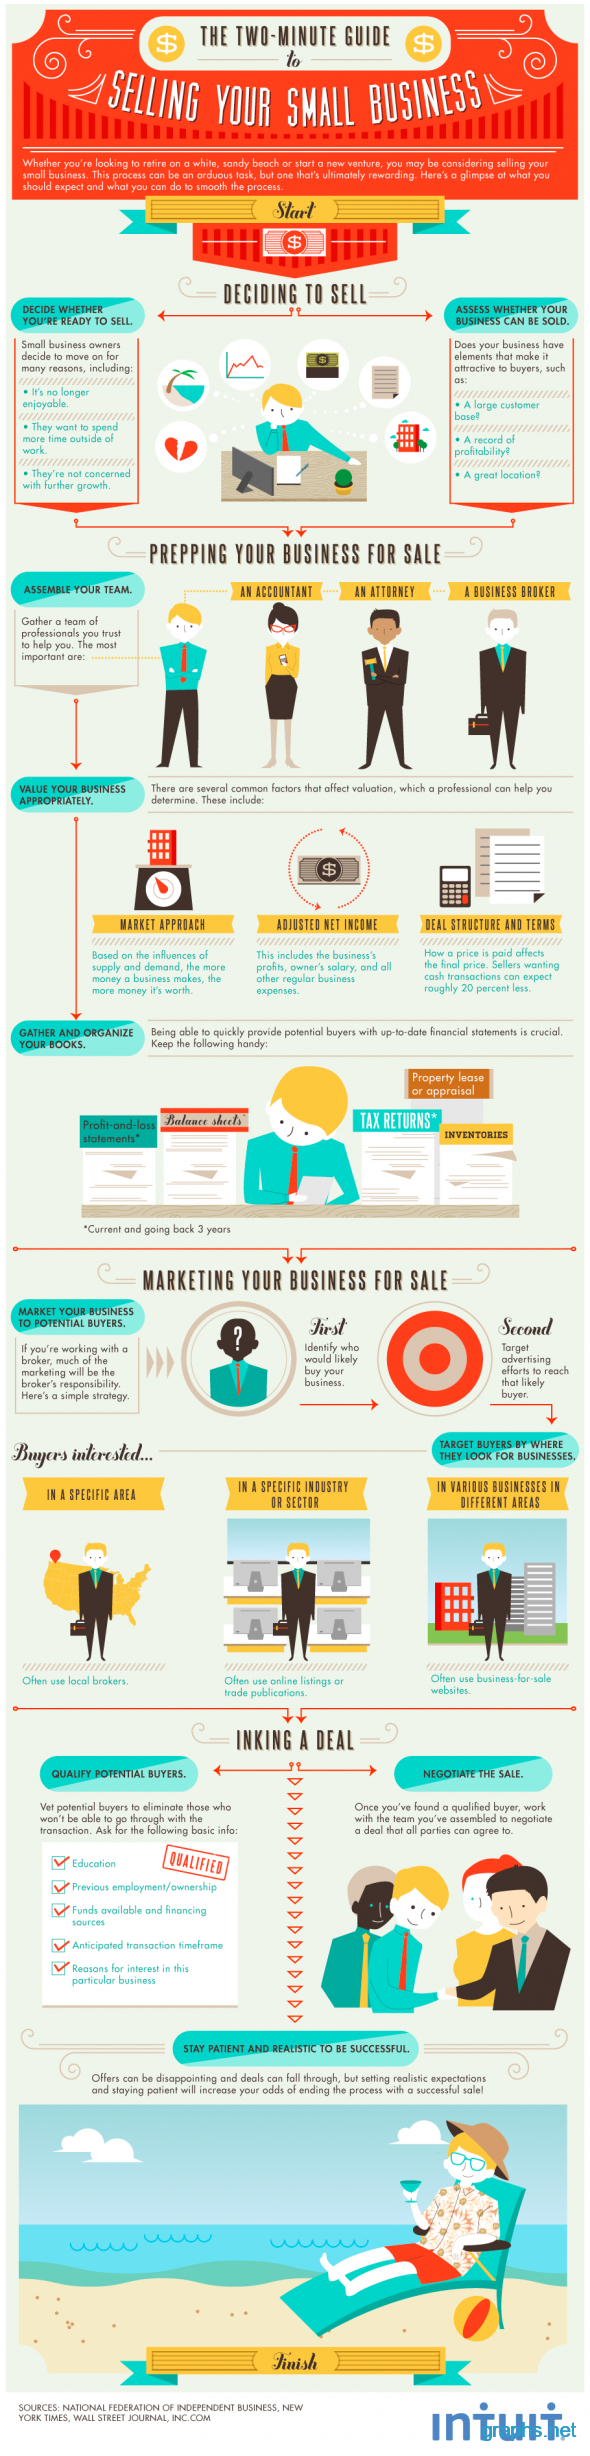 How to Sell Your Small Business?